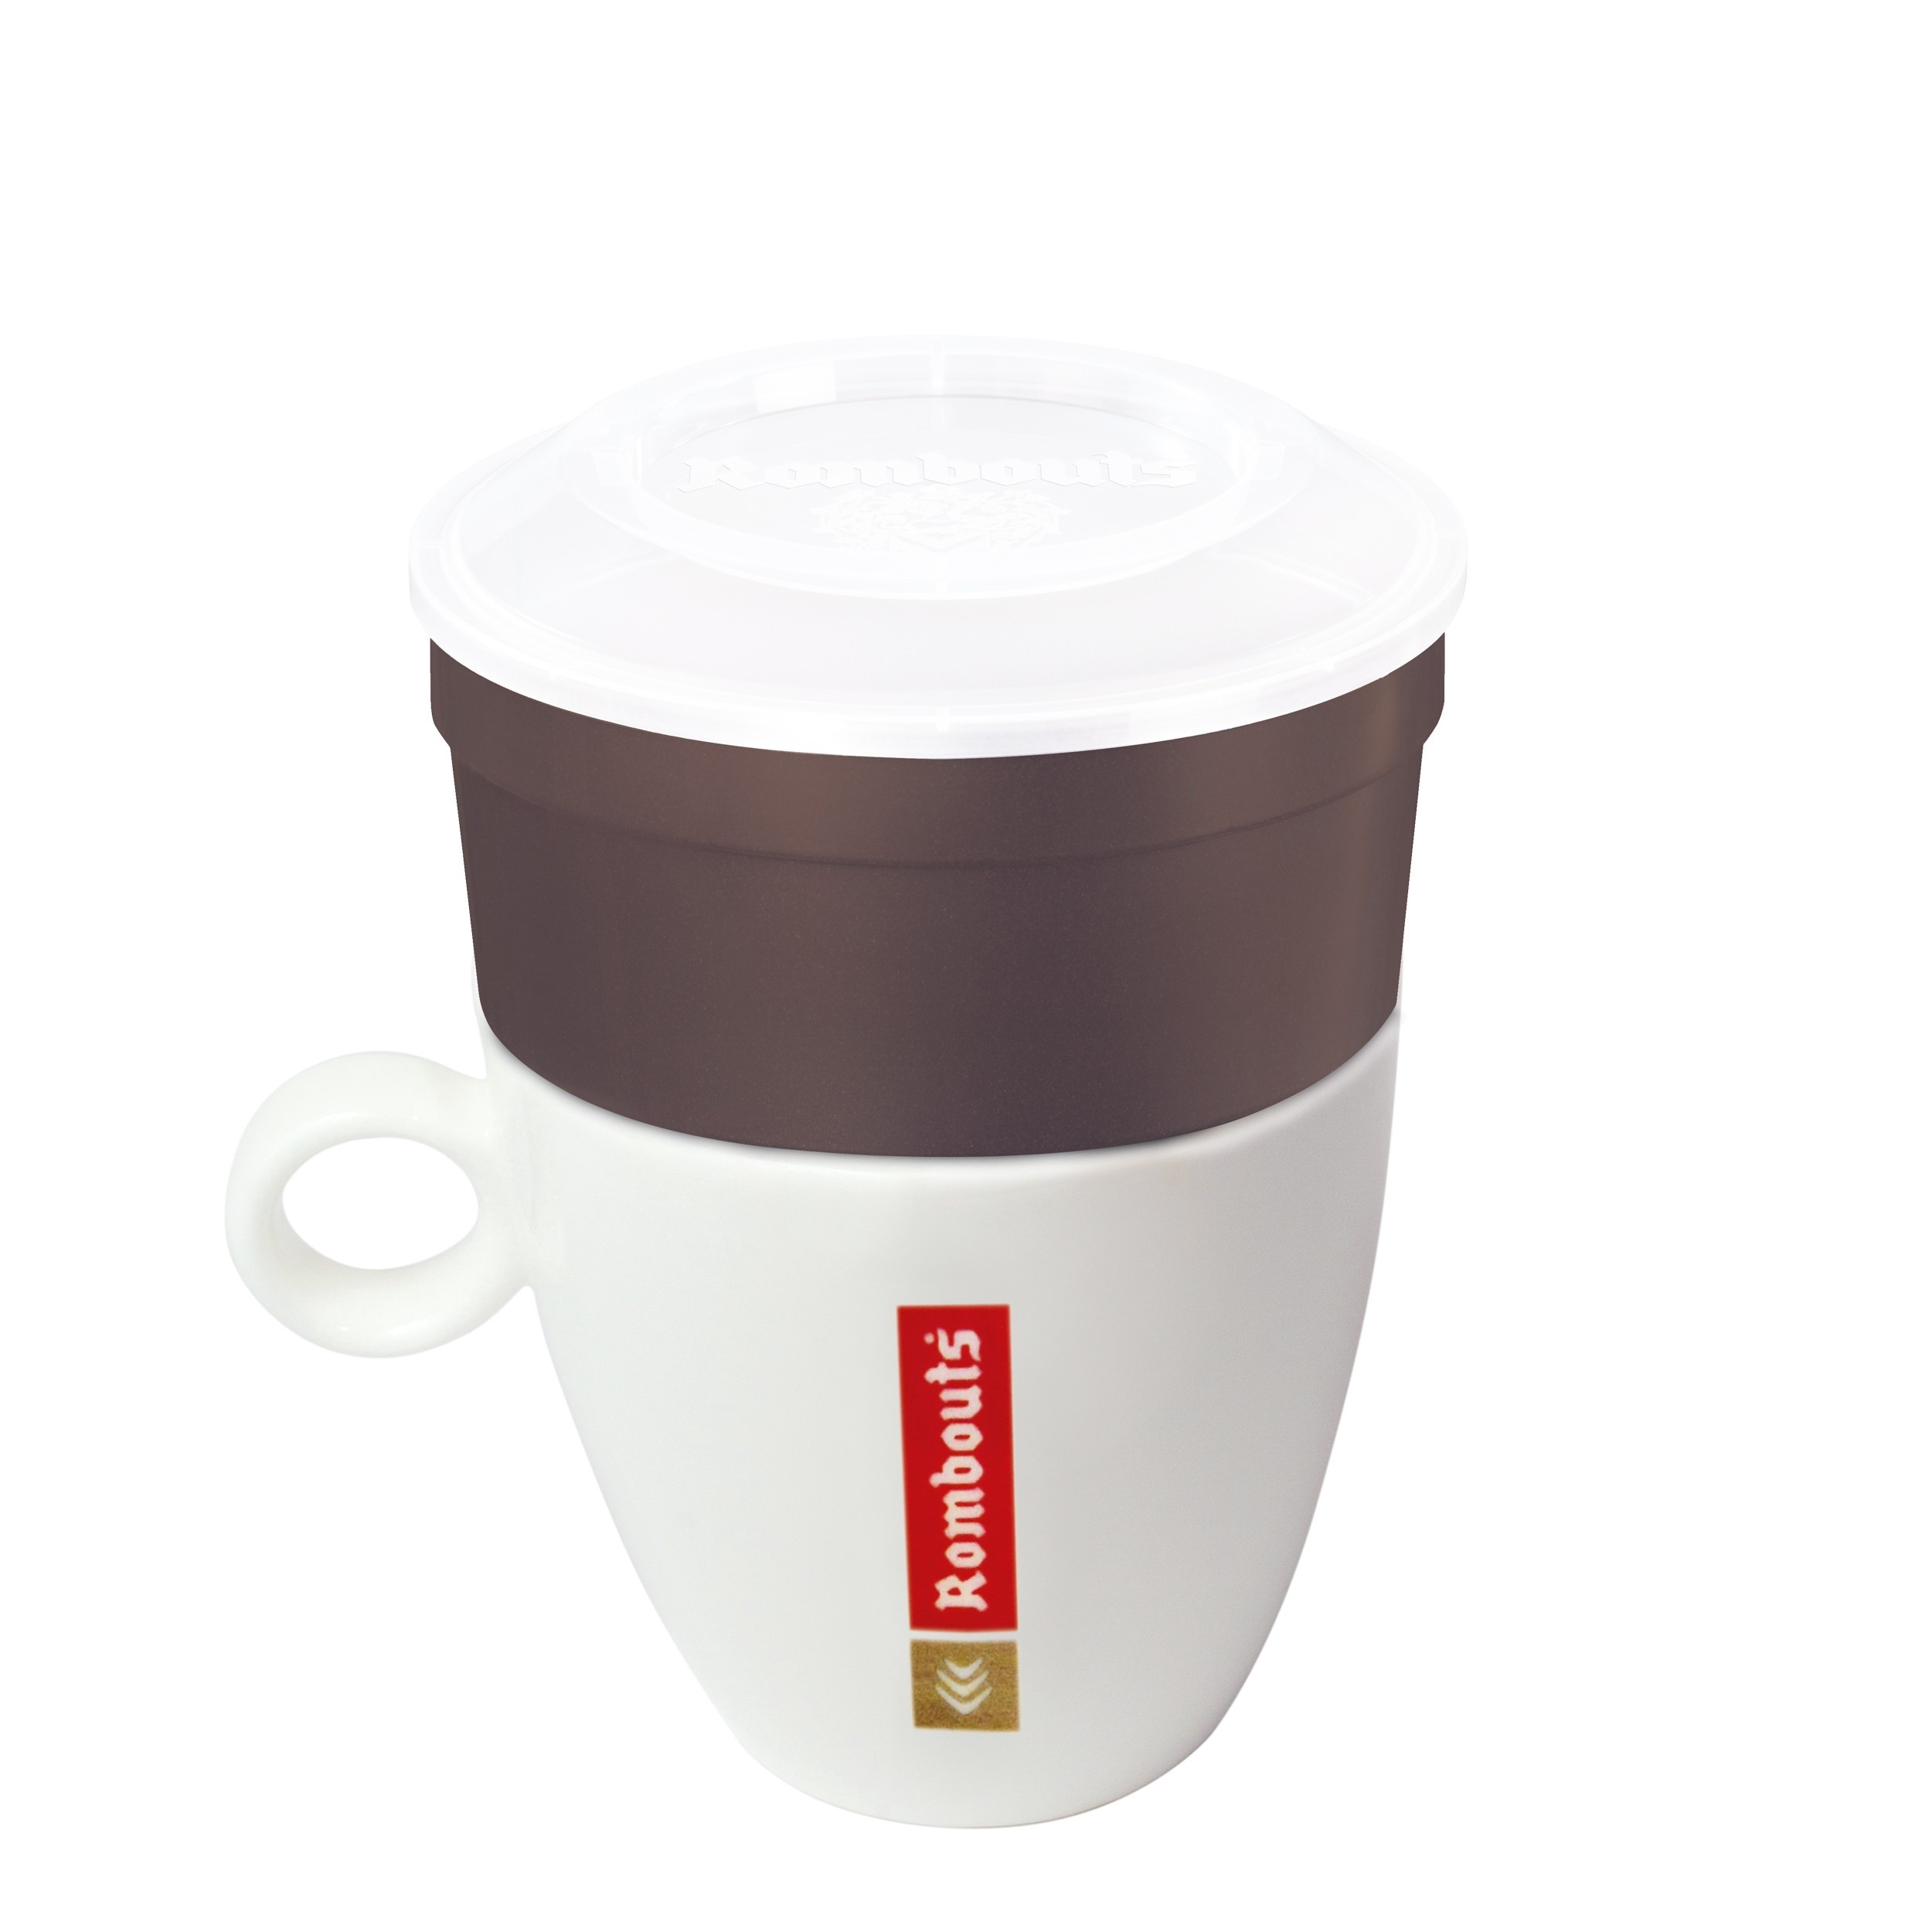 Rombouts Italian 1 Cup Filters 10's (4 Units)